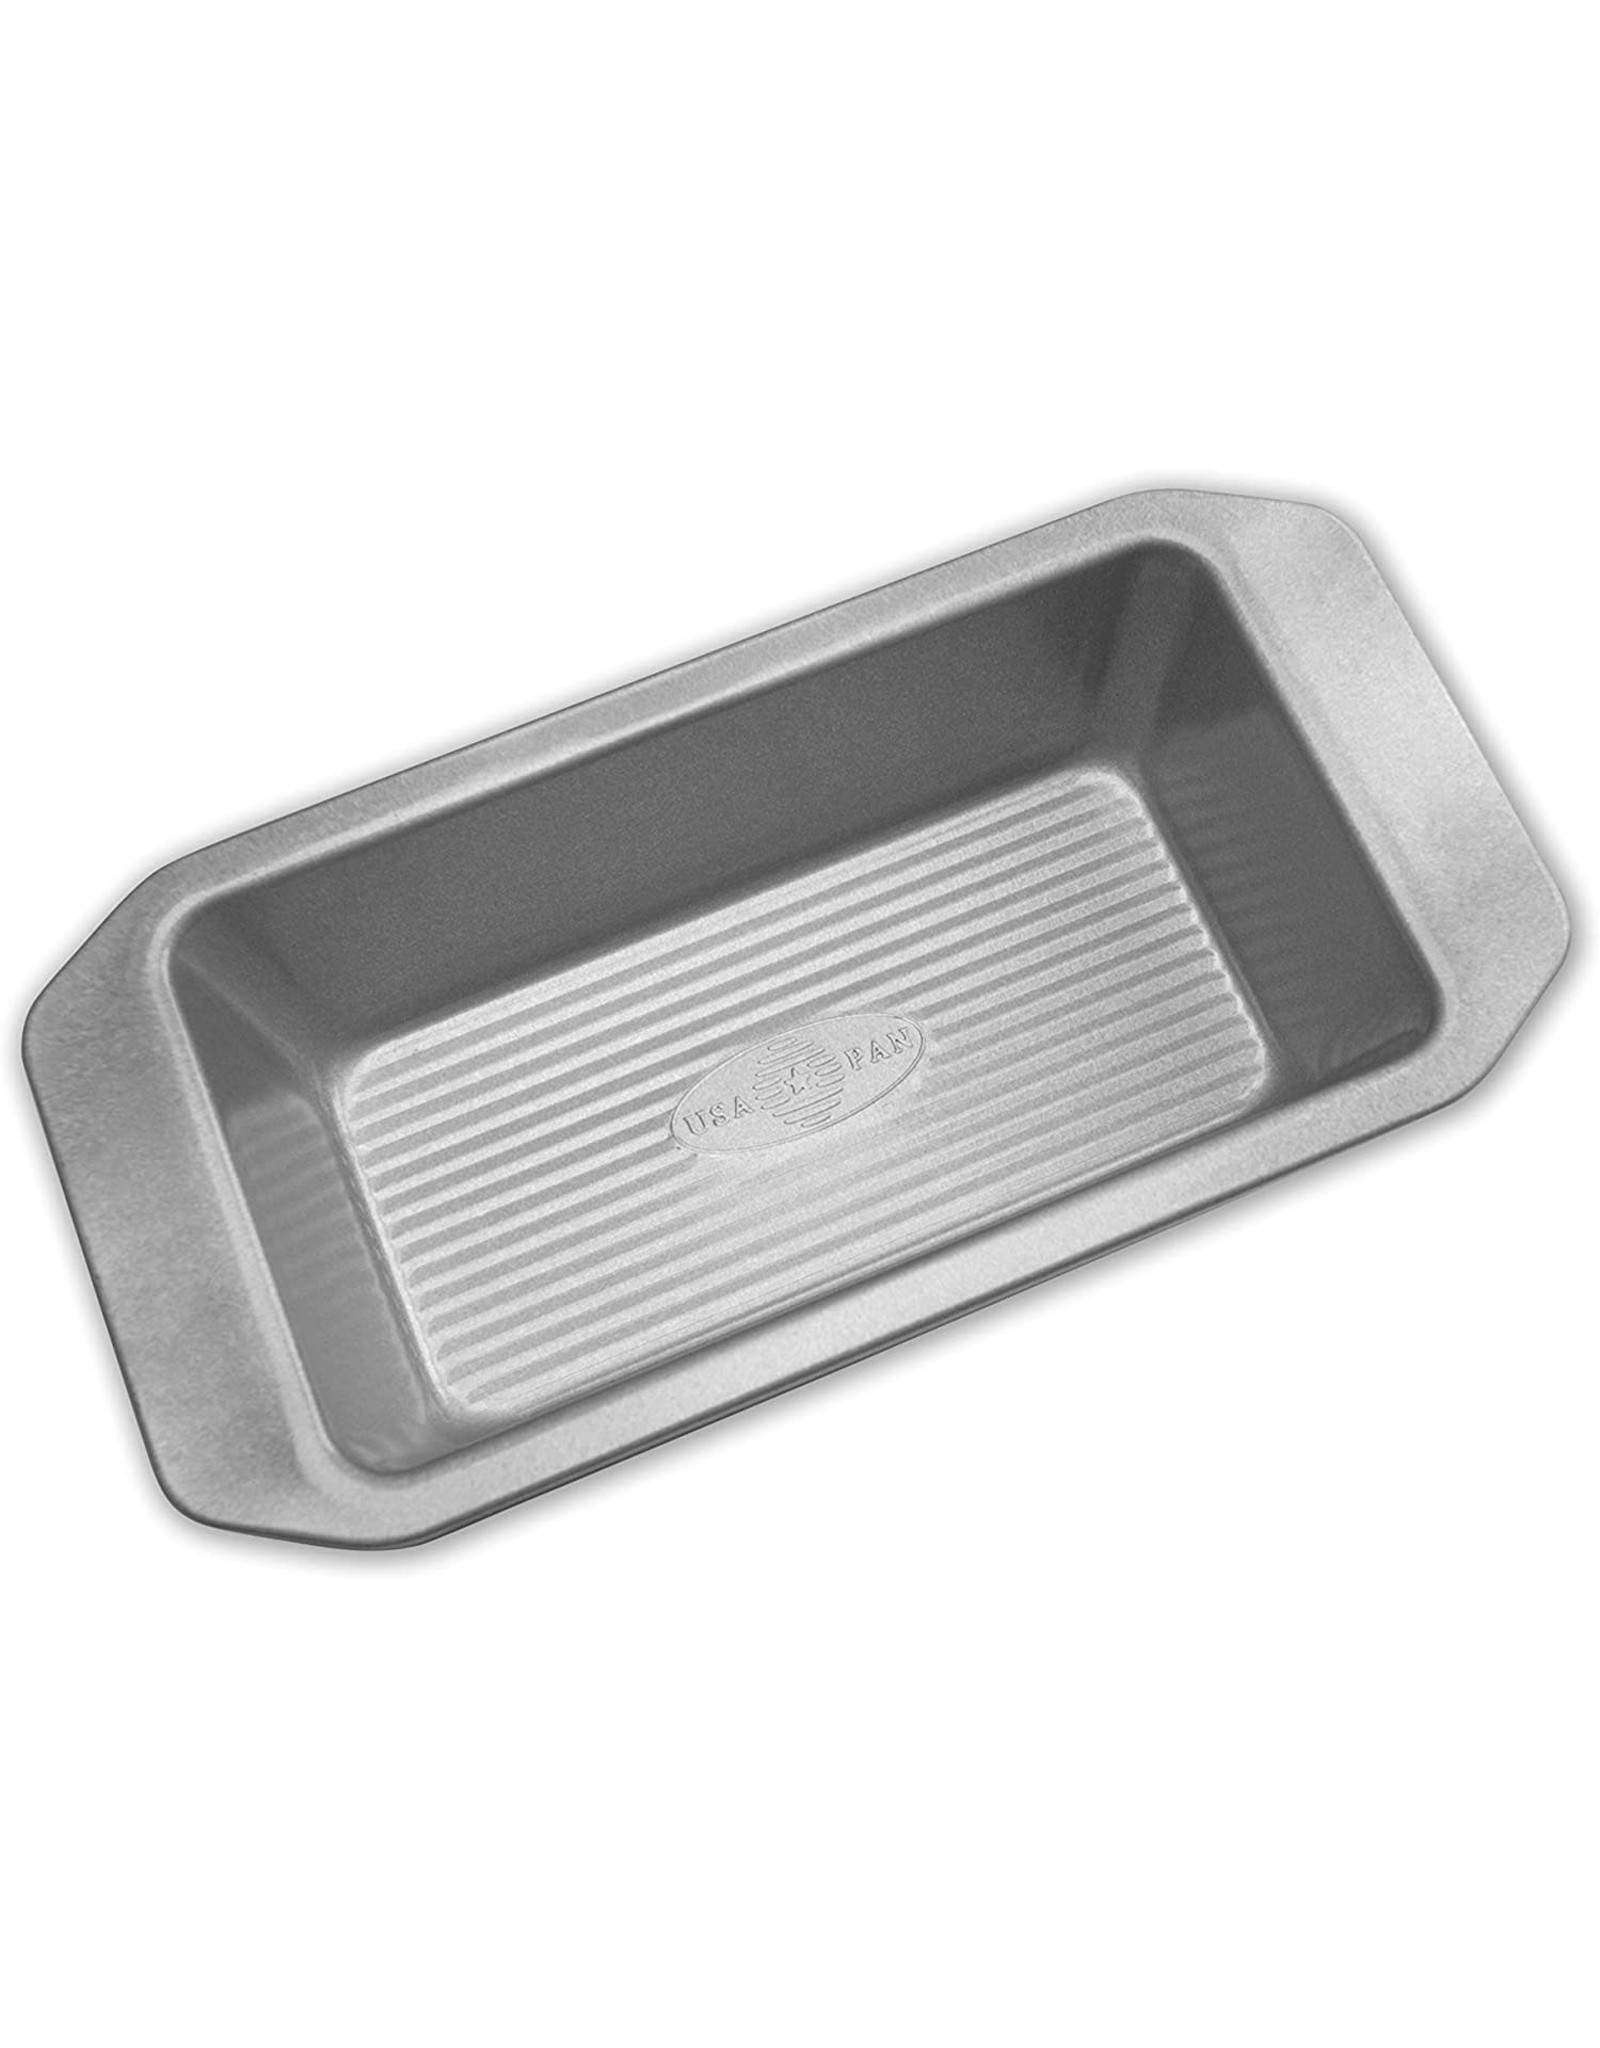 "USA Pan ABC Silicone Loaf Pan 8.5""x4.5""x2.75"" -USA PAN"